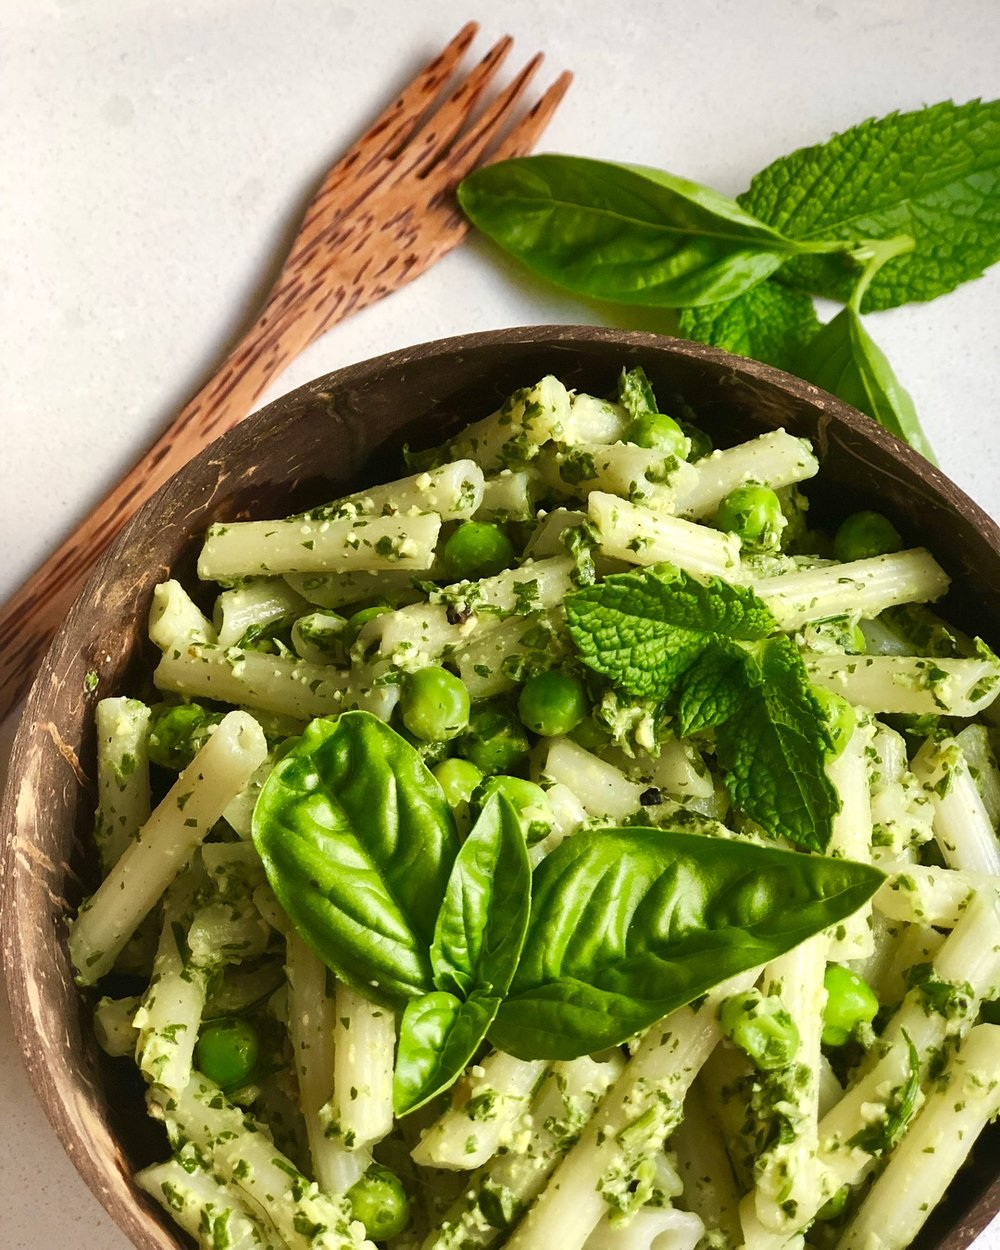 Basil & Mint Pesto Pasta